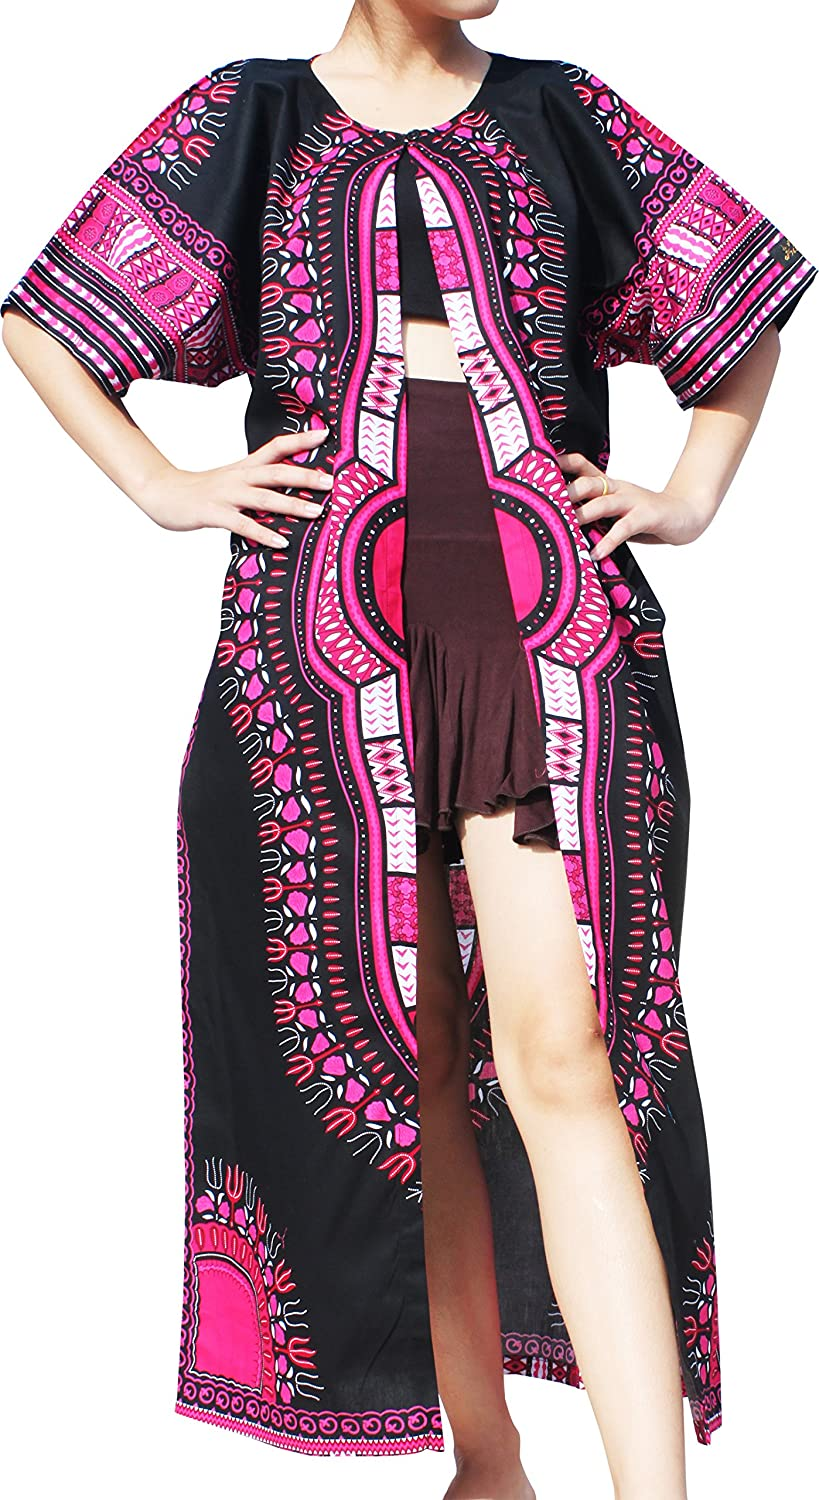 RaanPahMuang Houston Mall Casual Outer Cloak Part Bold D Dress Dashiki Ladies Large special price !!